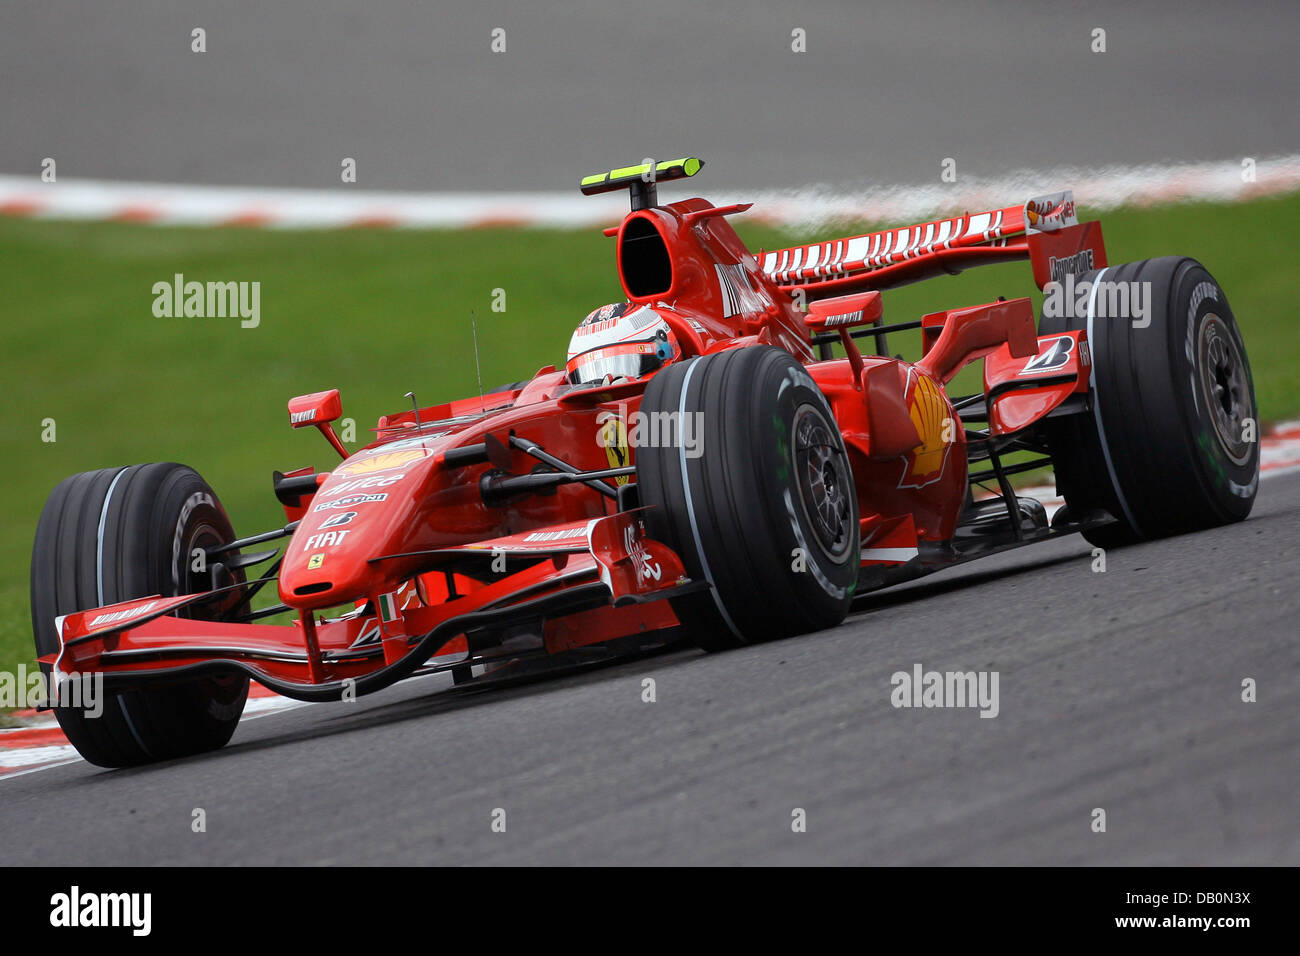 Circuit Trace Stock Photos Images Alamy Integrated Circuitvintage Finnish Formula One Pilot Kimi Raikkonen Of Ferrari Steers His Car During The Qualifying Session At